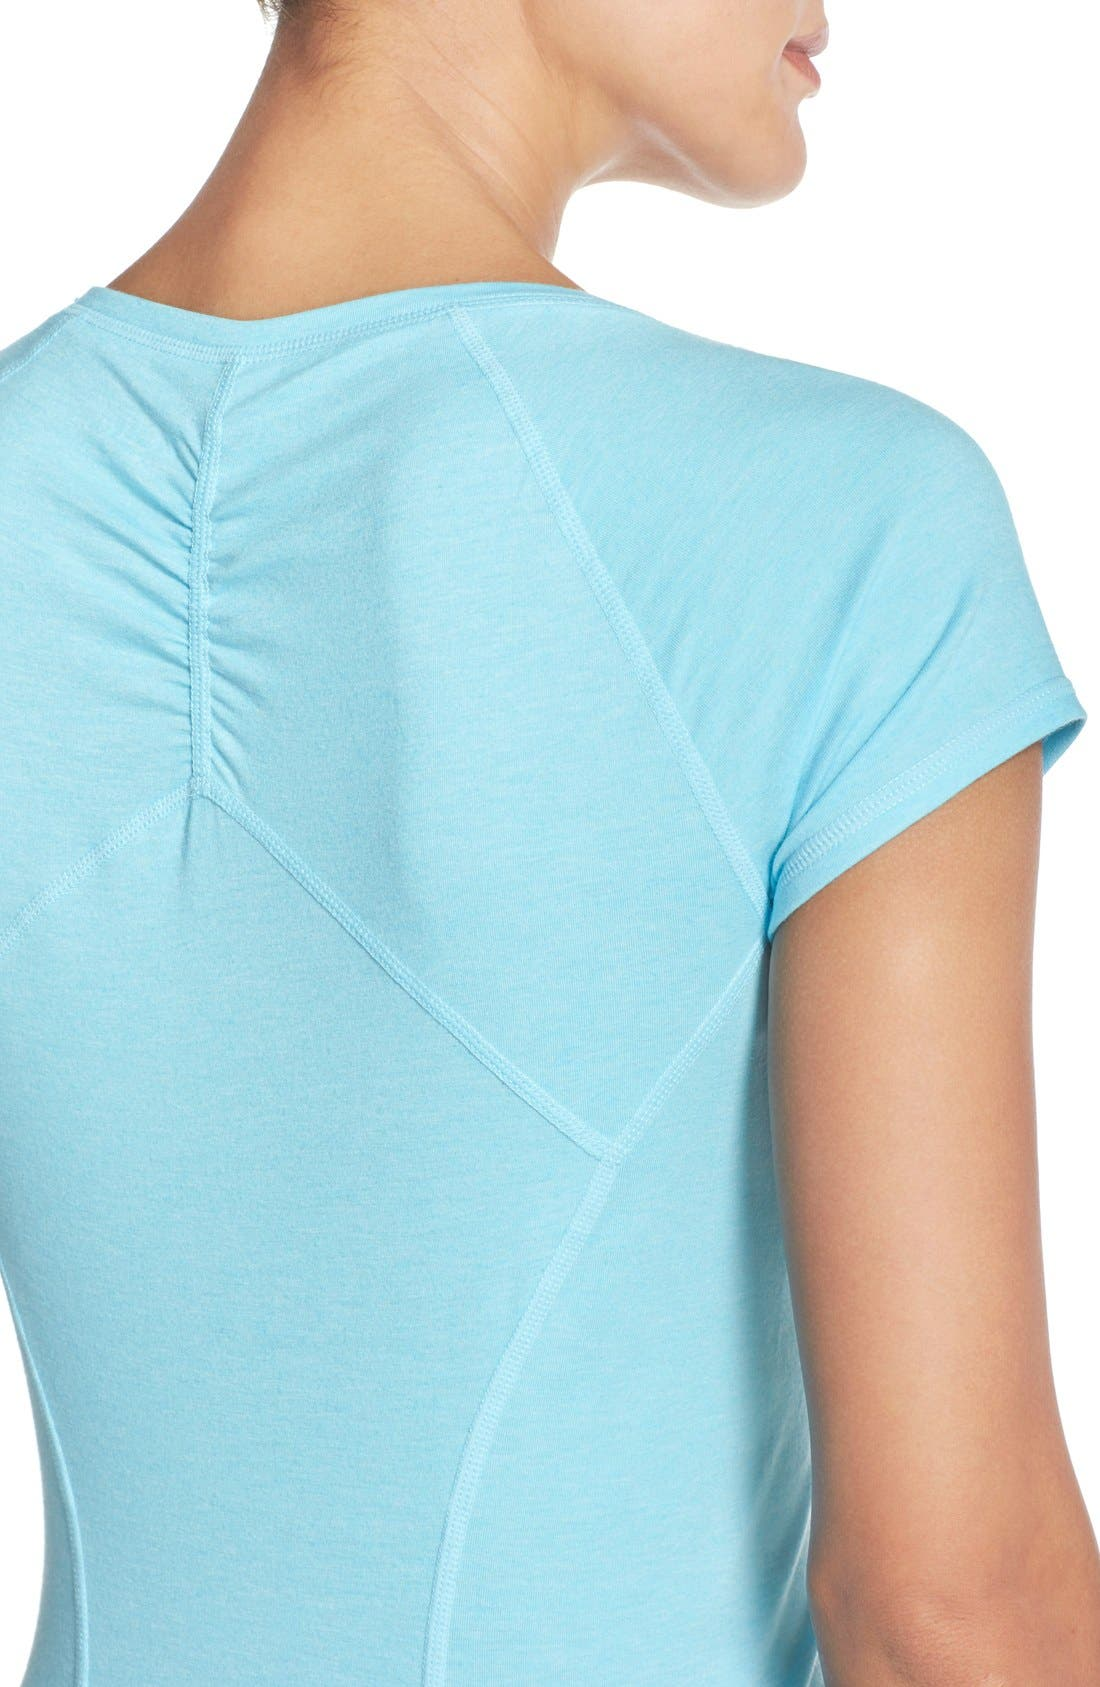 'Z 6' Ruched Tee,                             Alternate thumbnail 67, color,